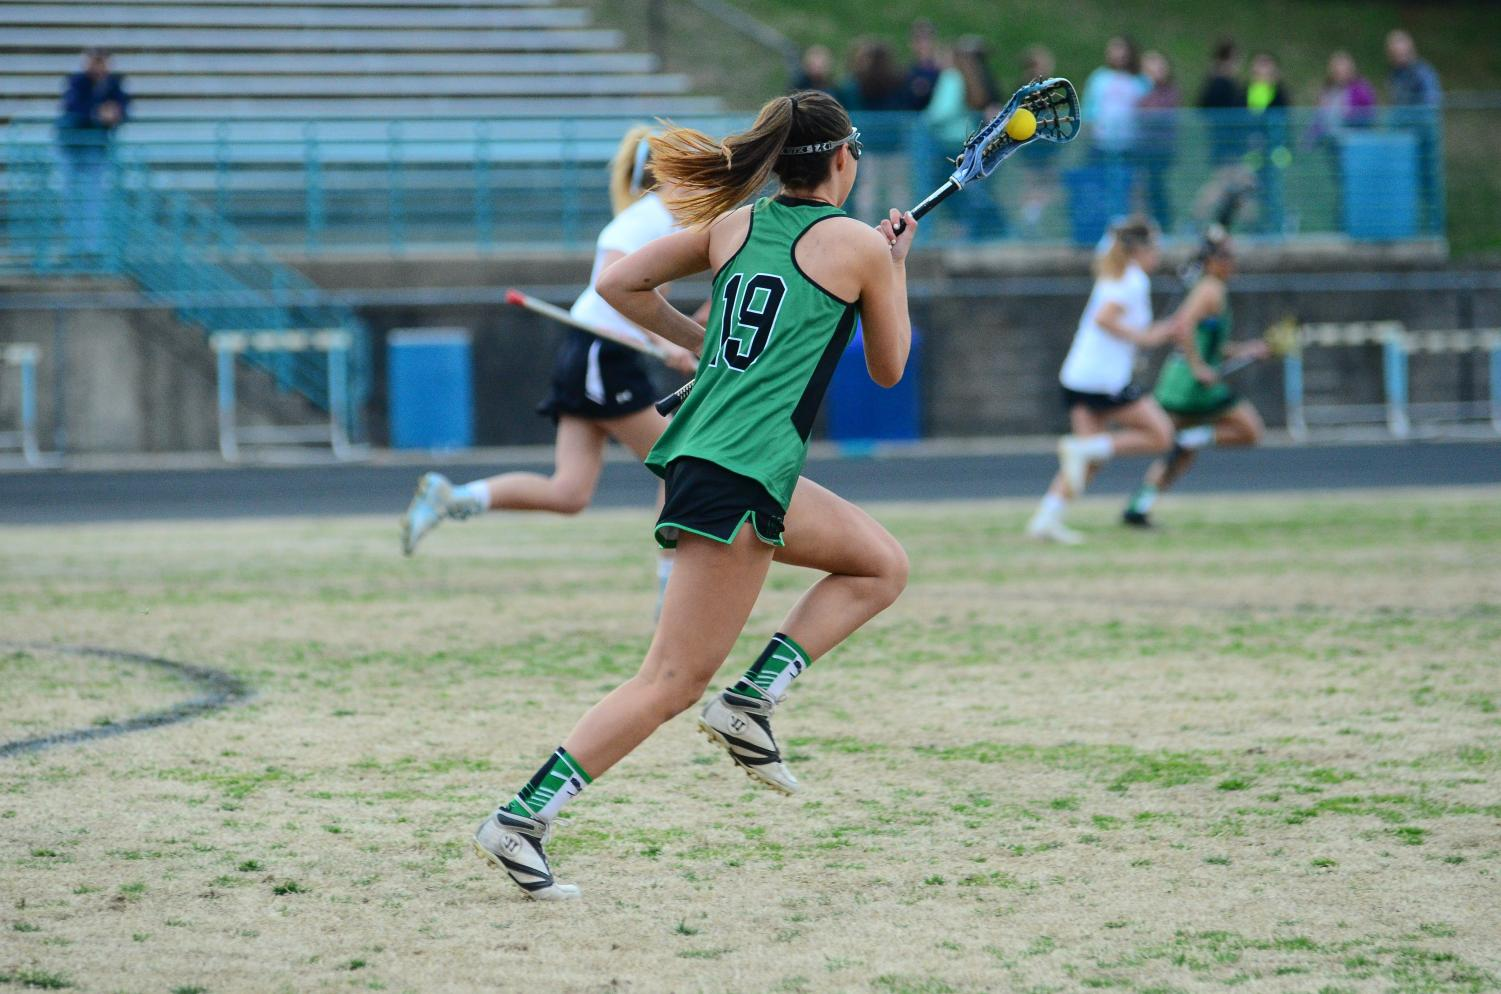 Senior captain Ashley Smith runs down the field, looking to go on the offensive. Girls lacrosse is off to a great start in the playoffs, winning both games so far against Einstein and Churchill.